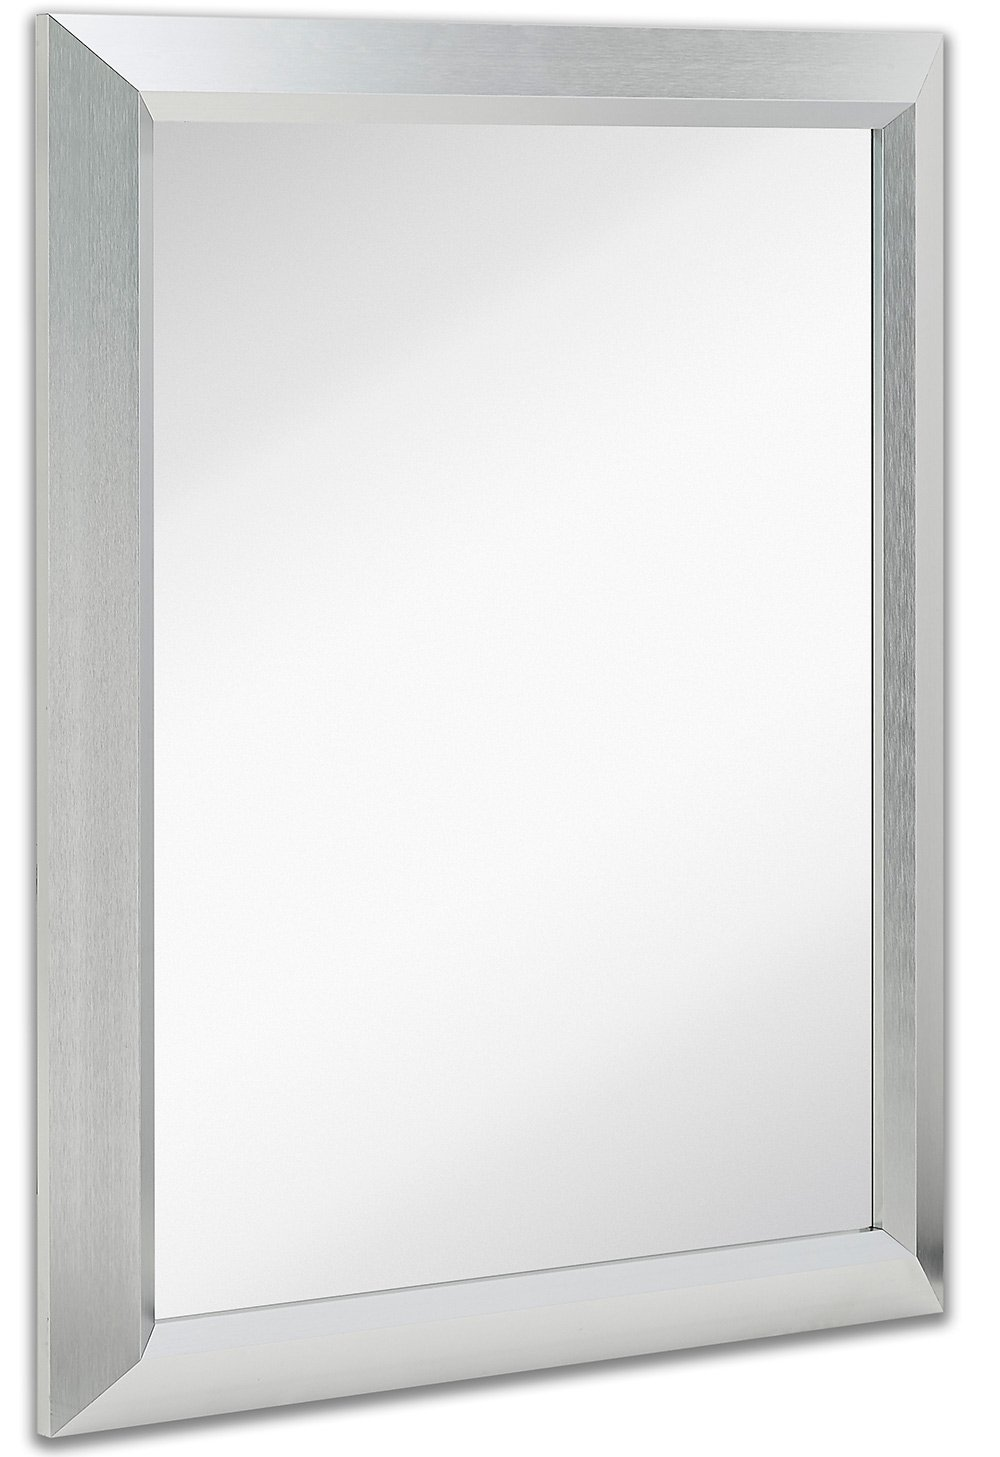 Premium Rectangular Brushed Aluminum Wall Mirror | Contemporary Metal Frame Silver Backed Mirrored Glass | Vanity, Bedroom or Bathroom | Rectangle Hangs Horizontal or Vertical (24'' x 30'')